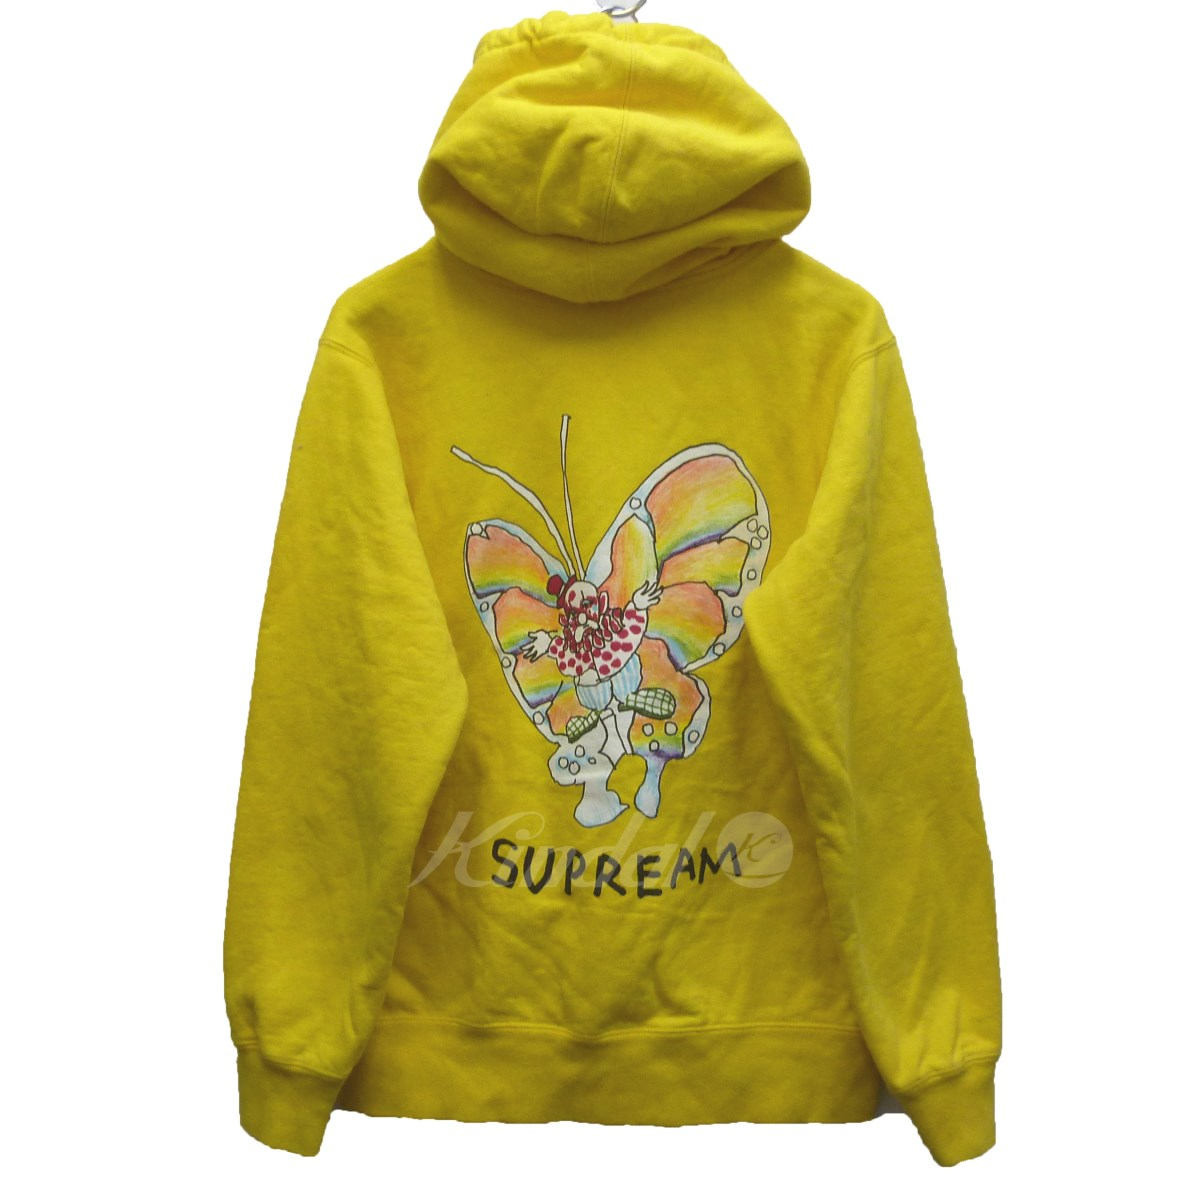 【中古】SUPREME×Mark Gonzales 16SS 「Gona Butterfly Zip Up Sweat」 バタフライパーカー 【送料無料】 【045141】 【KIND1550】